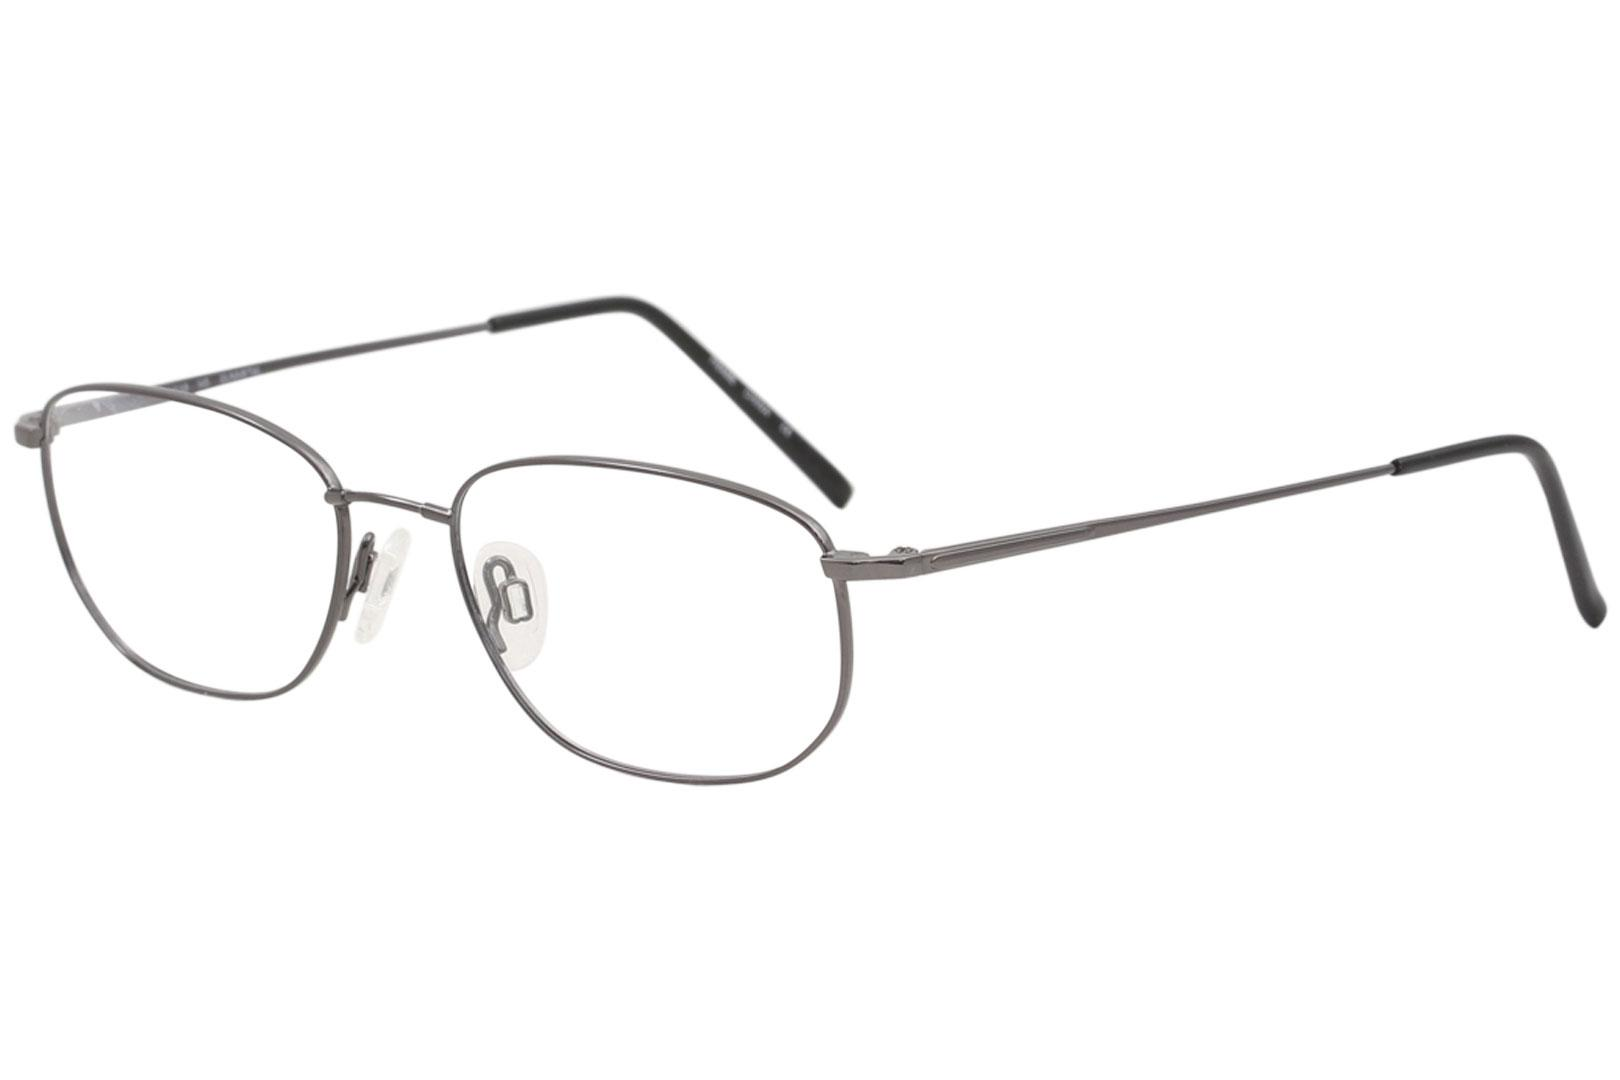 Image of Flexon Men's Eyeglasses 600 033 Gunmetal Full Rim Optical Frame 54mm - Gunmetal   033 - Lens 54 Bridge 18 Temple 145mm